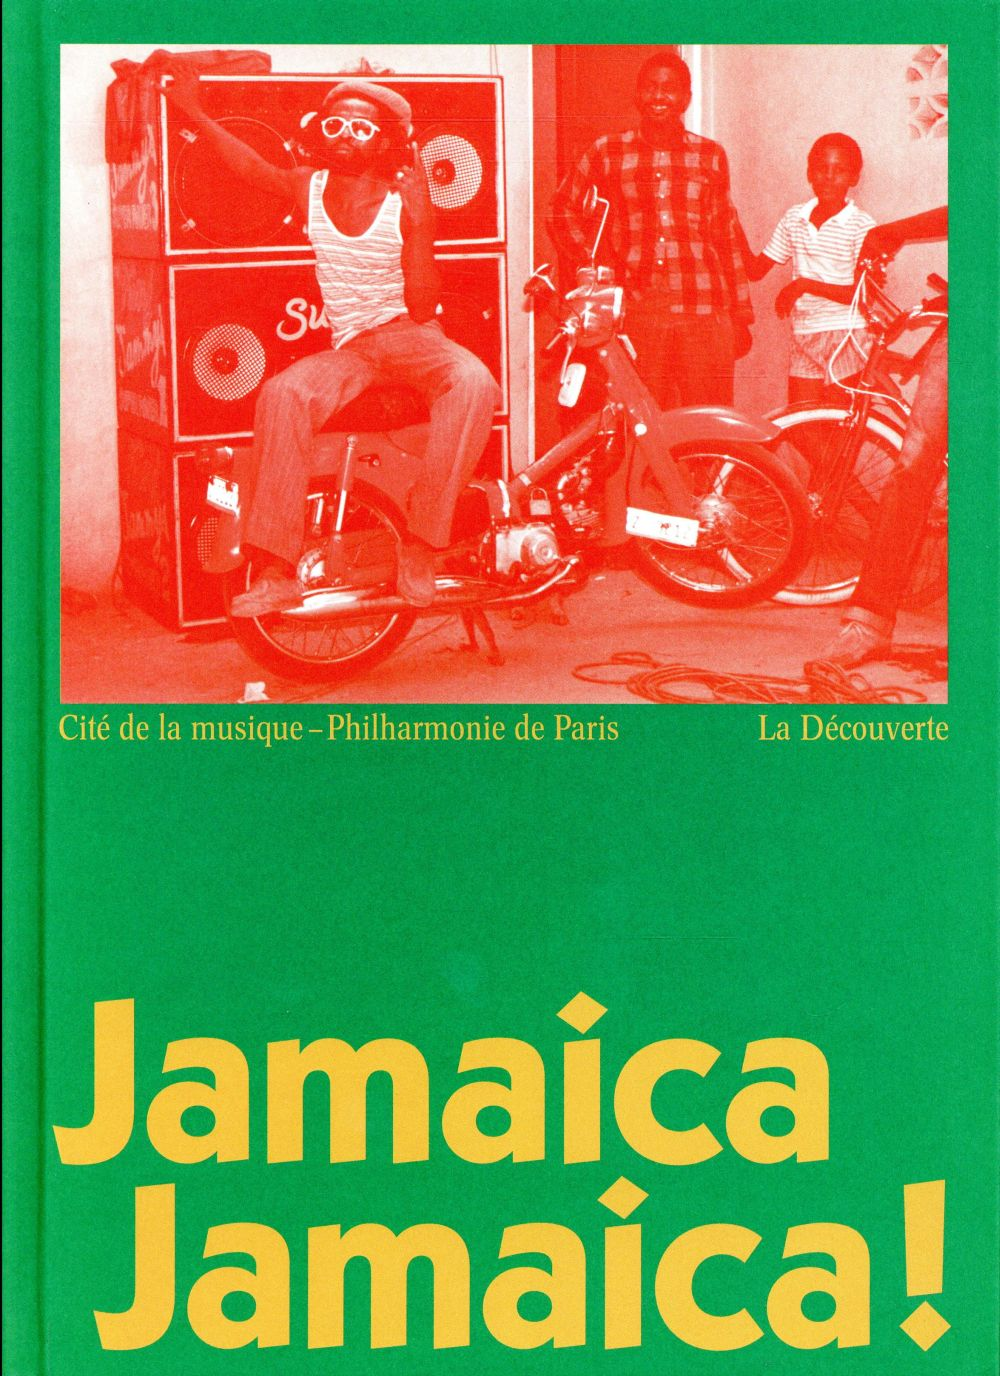 JAMAICA JAMAICA !   CATALOGUE DE L'EXPOSITION A LA PHILHARMONIE DE PARIS